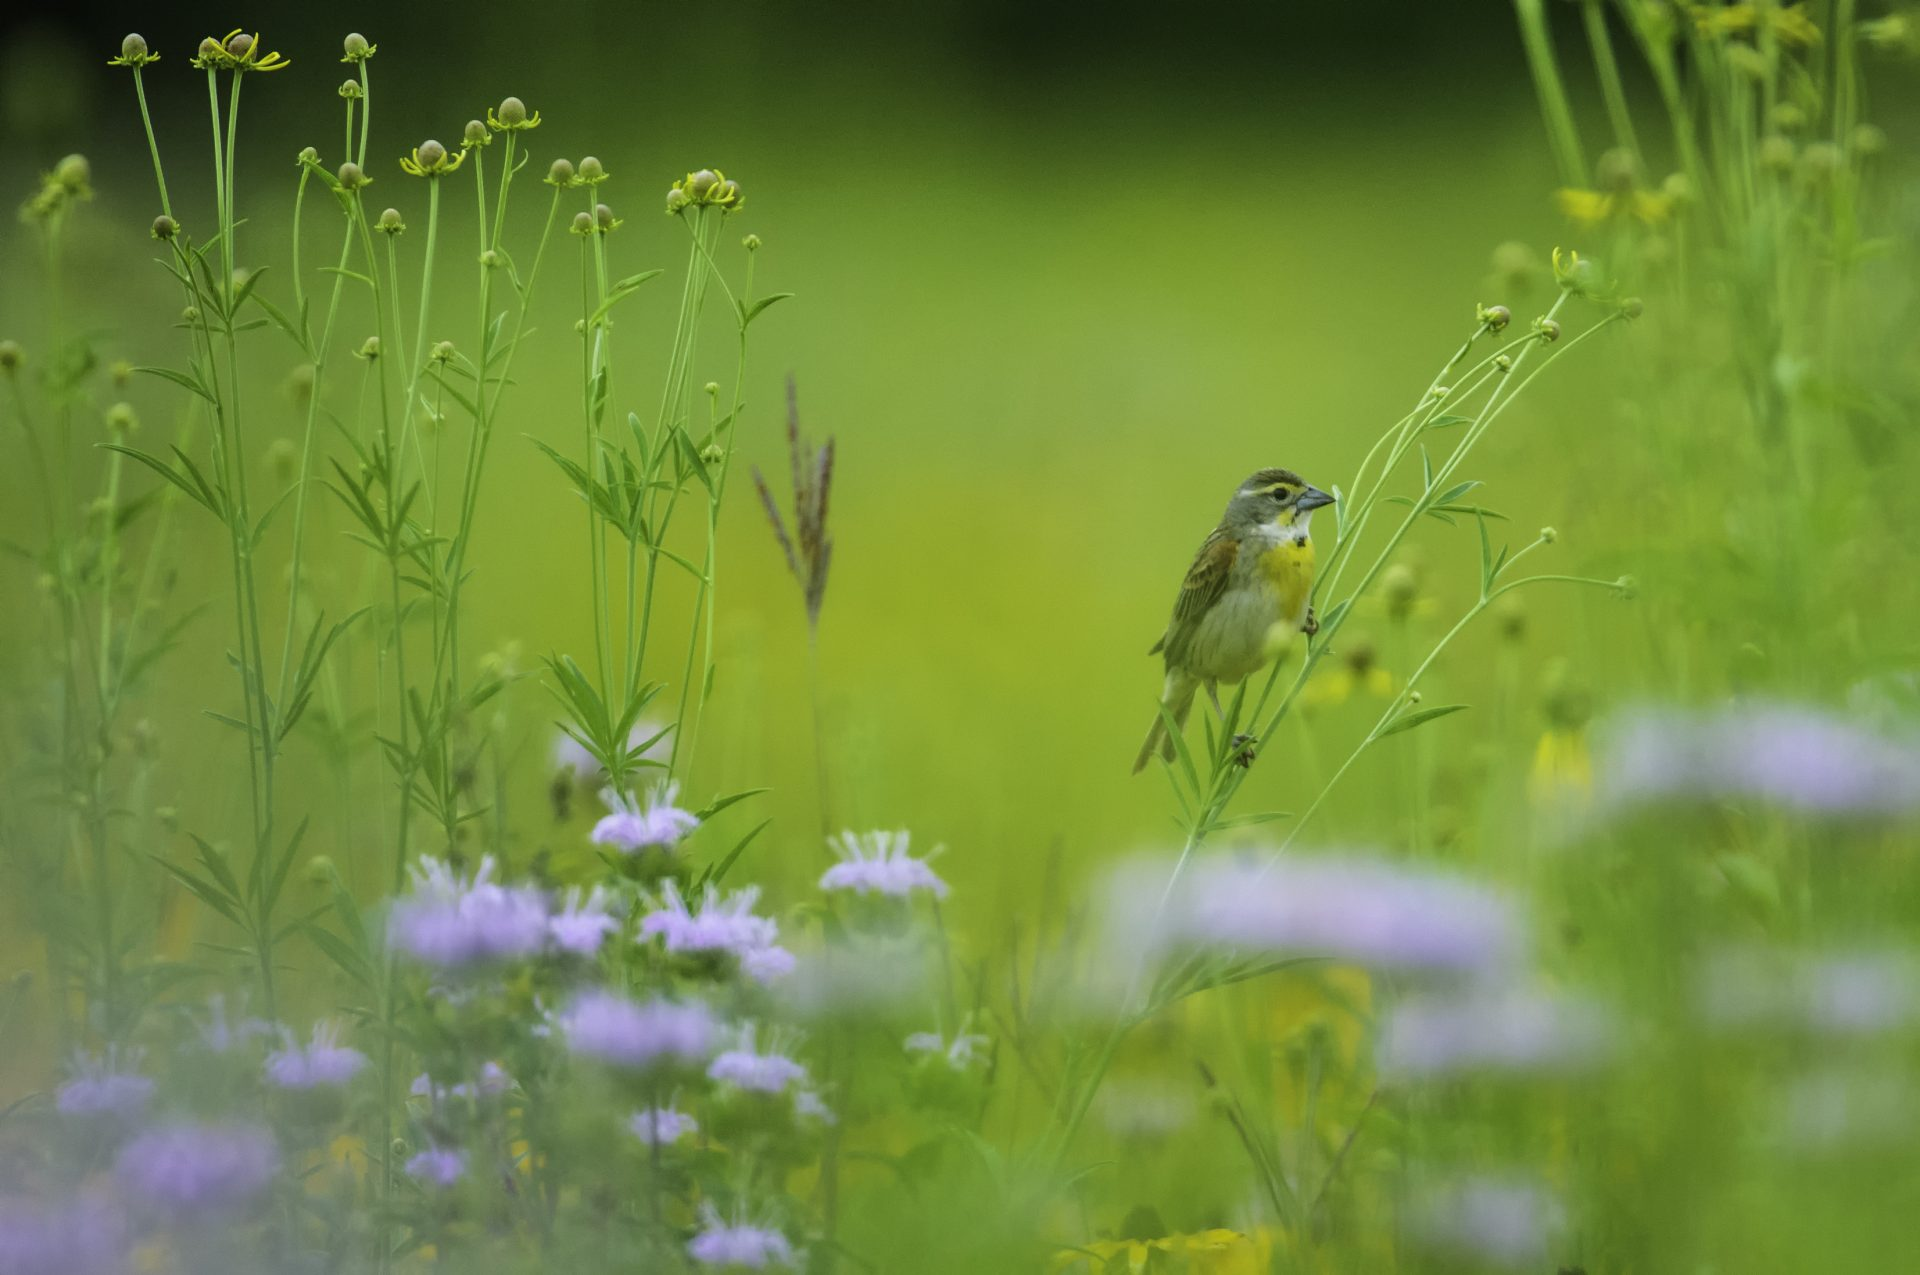 Dickcissels - though rare in our region - are common in Dickcissel Prairie